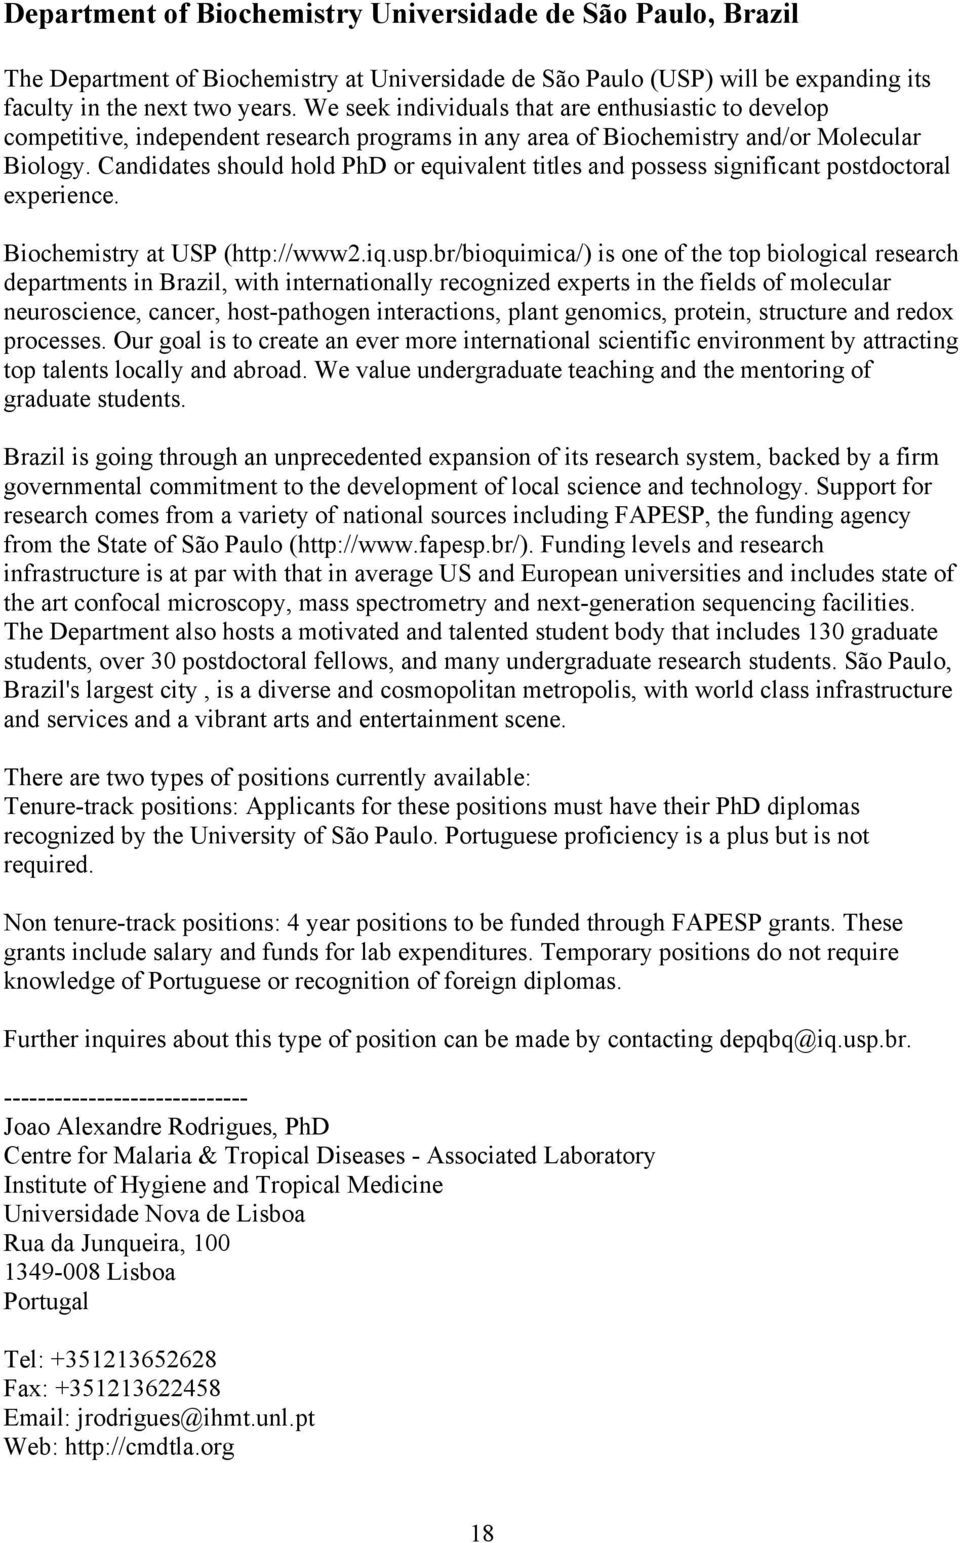 Candidates should hold PhD or equivalent titles and possess significant postdoctoral experience. Biochemistry at USP (http://www2.iq.usp.